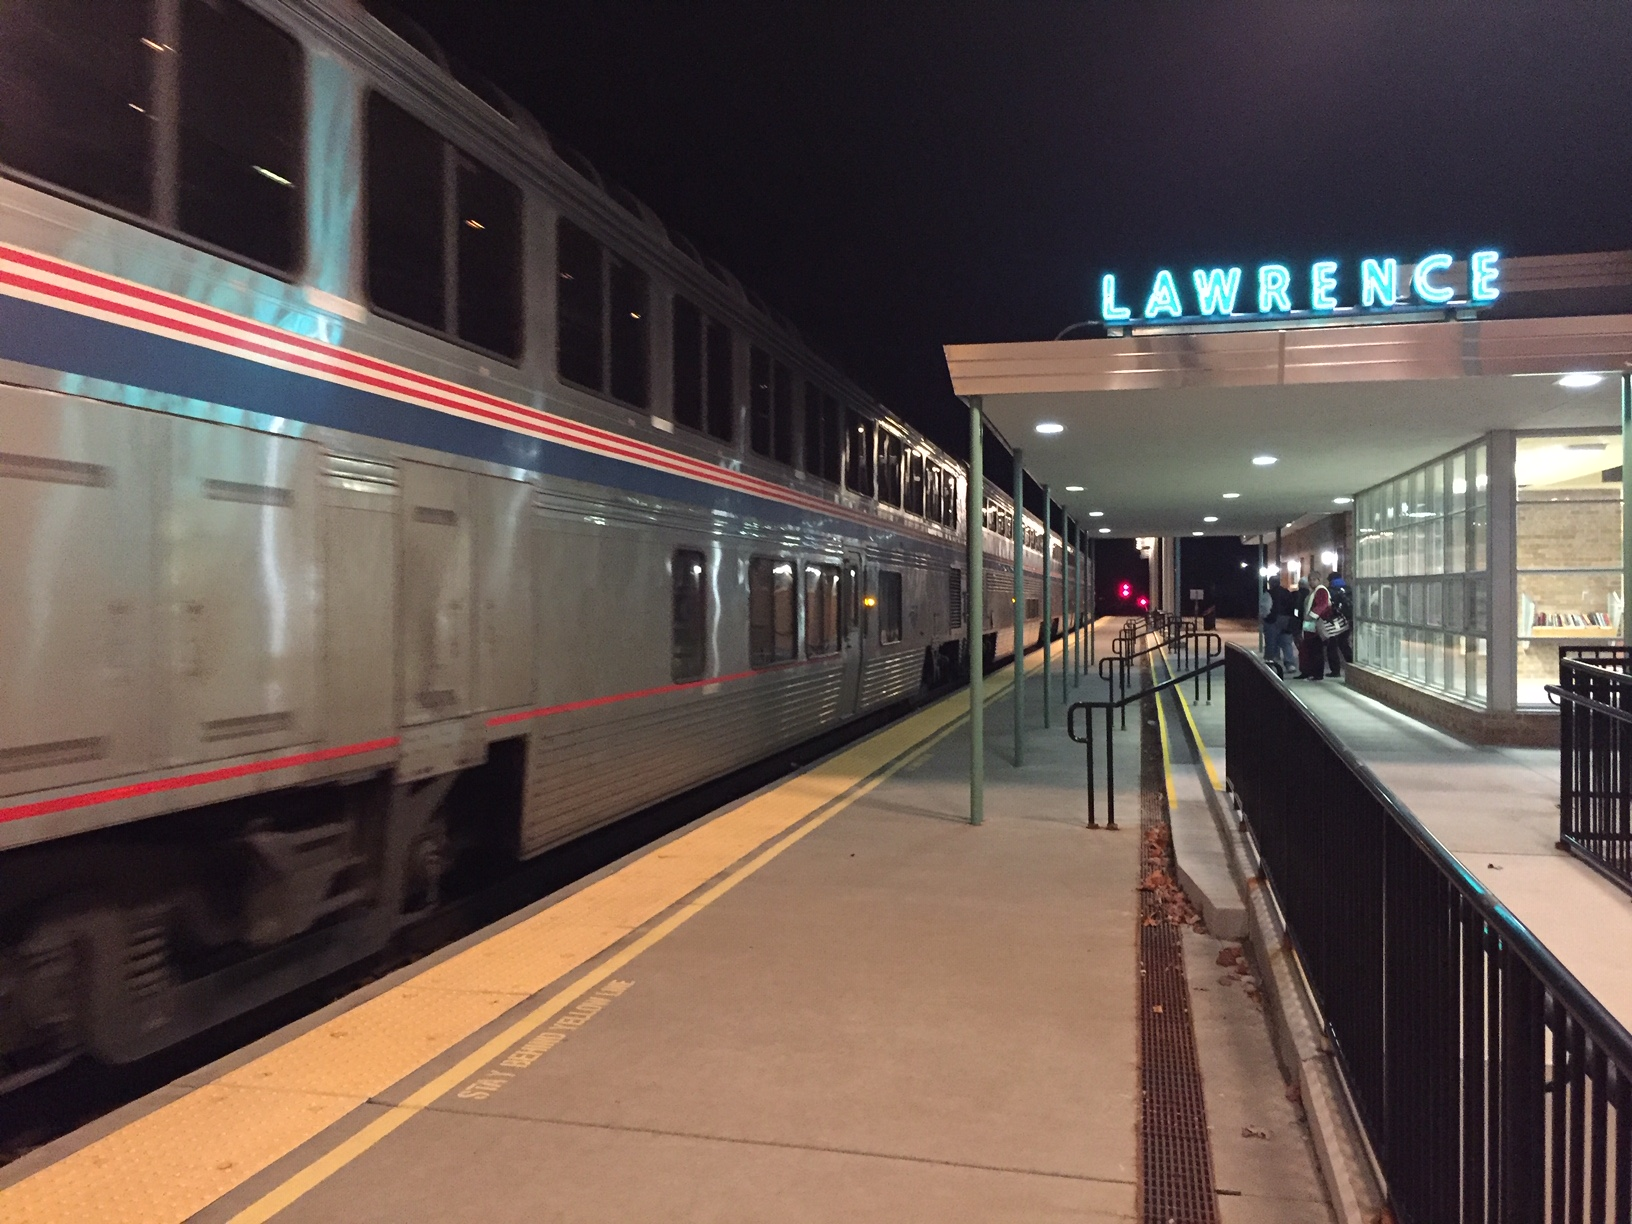 The westbound Southwest Chief, an Amtrak train, pulls into the depot in Lawrence, Kansas, just before midnight.  (Photo by J. Schafer)